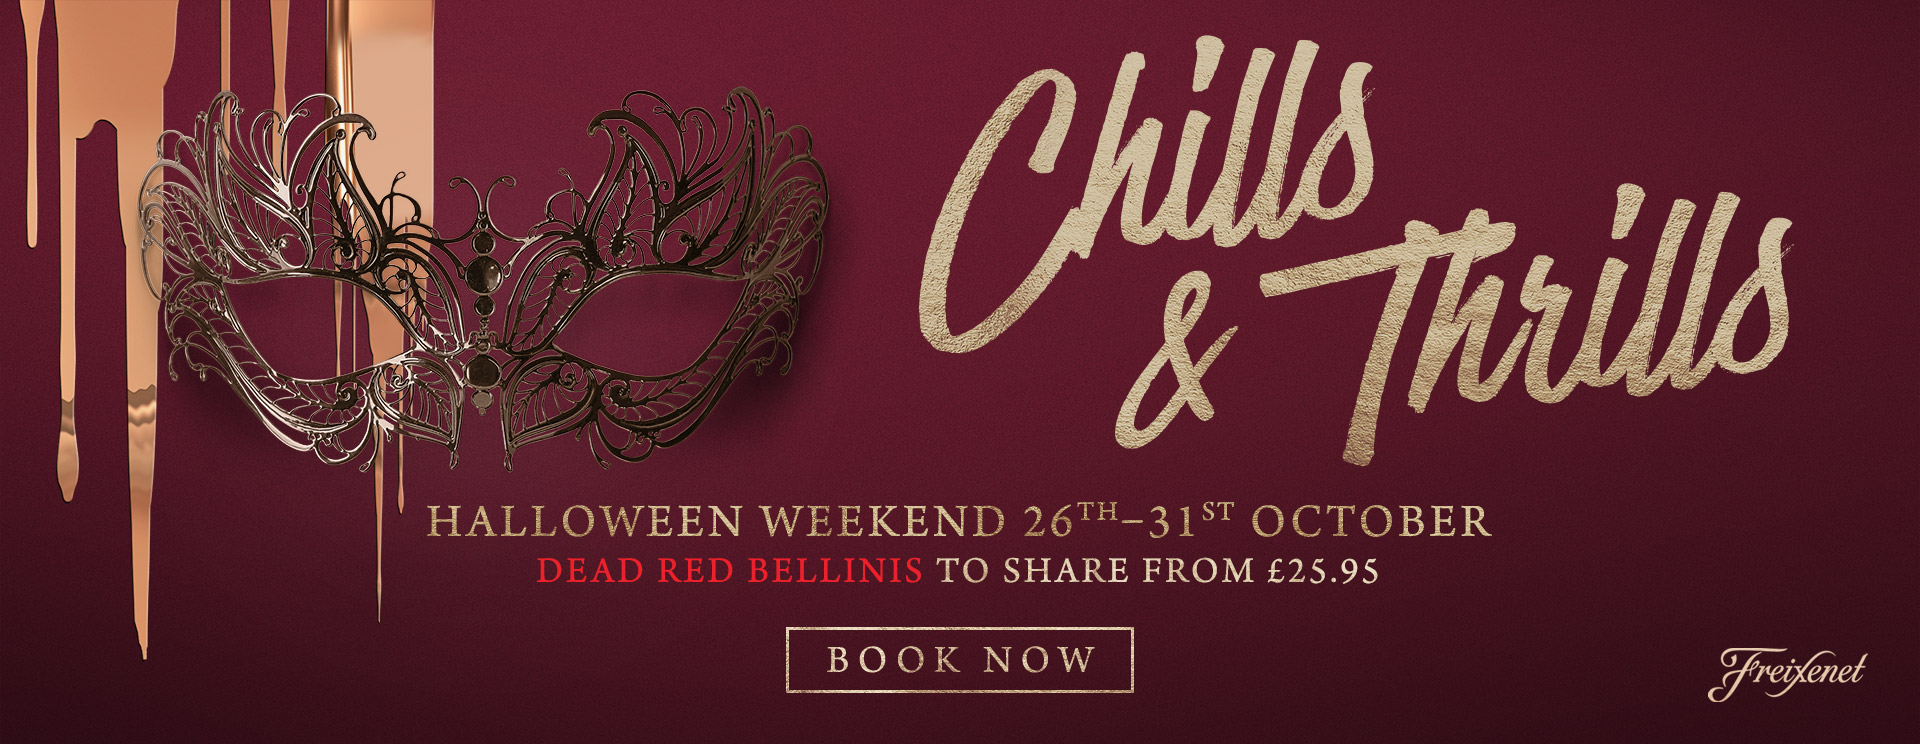 Chills & Thrills this Halloween at The Goffs Oak